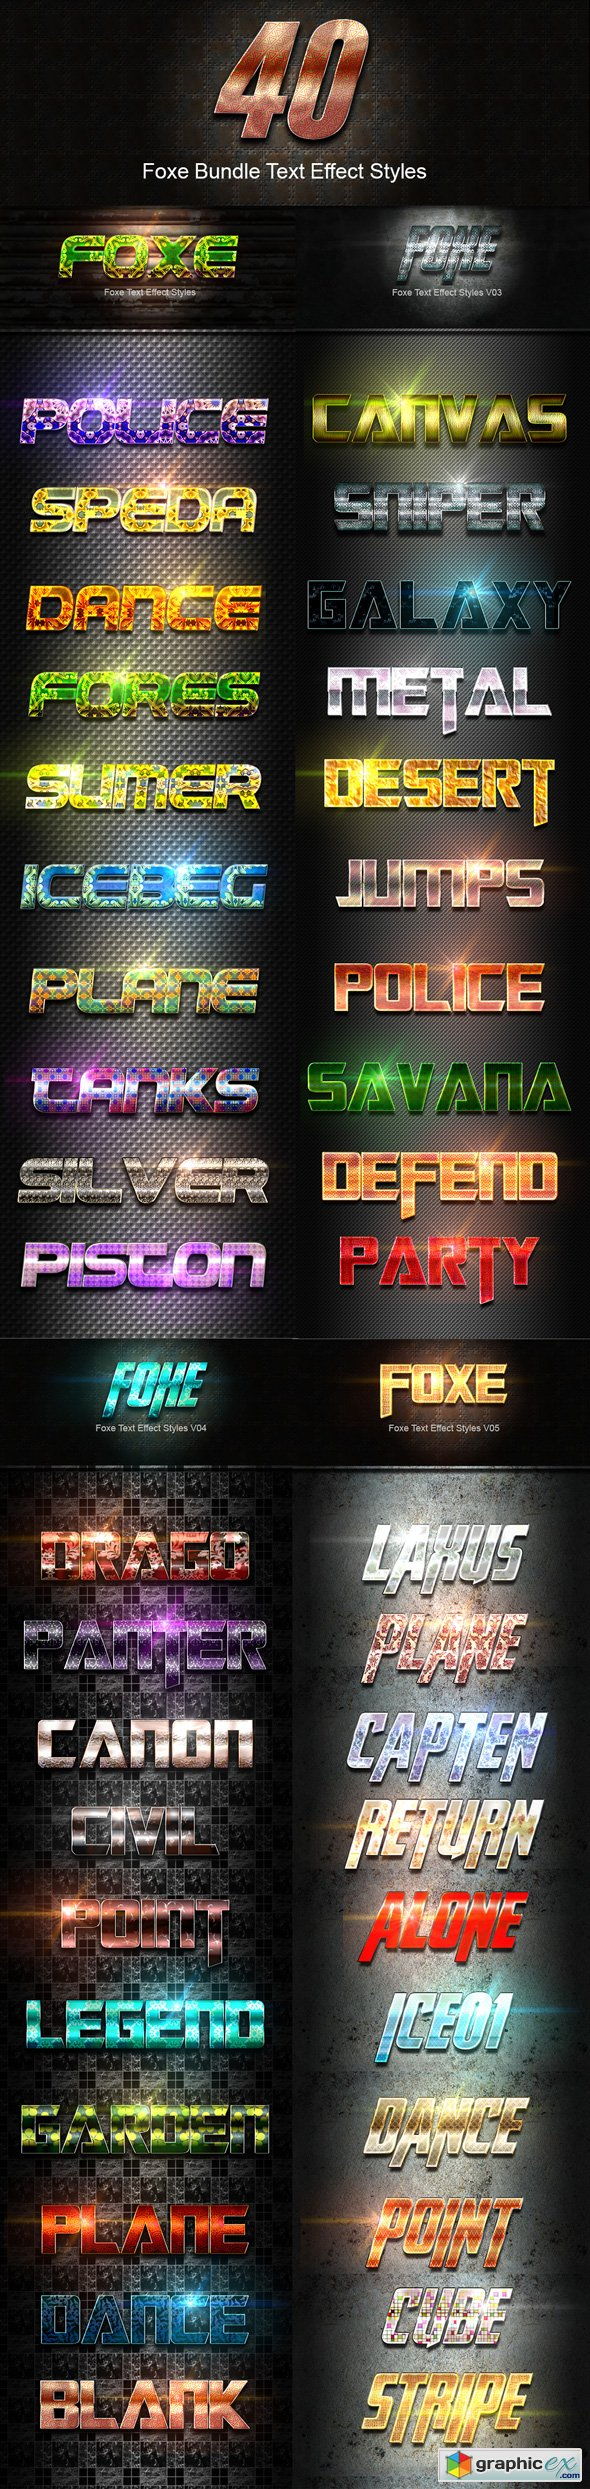 40 Foxe Bundle Text Effect Styles